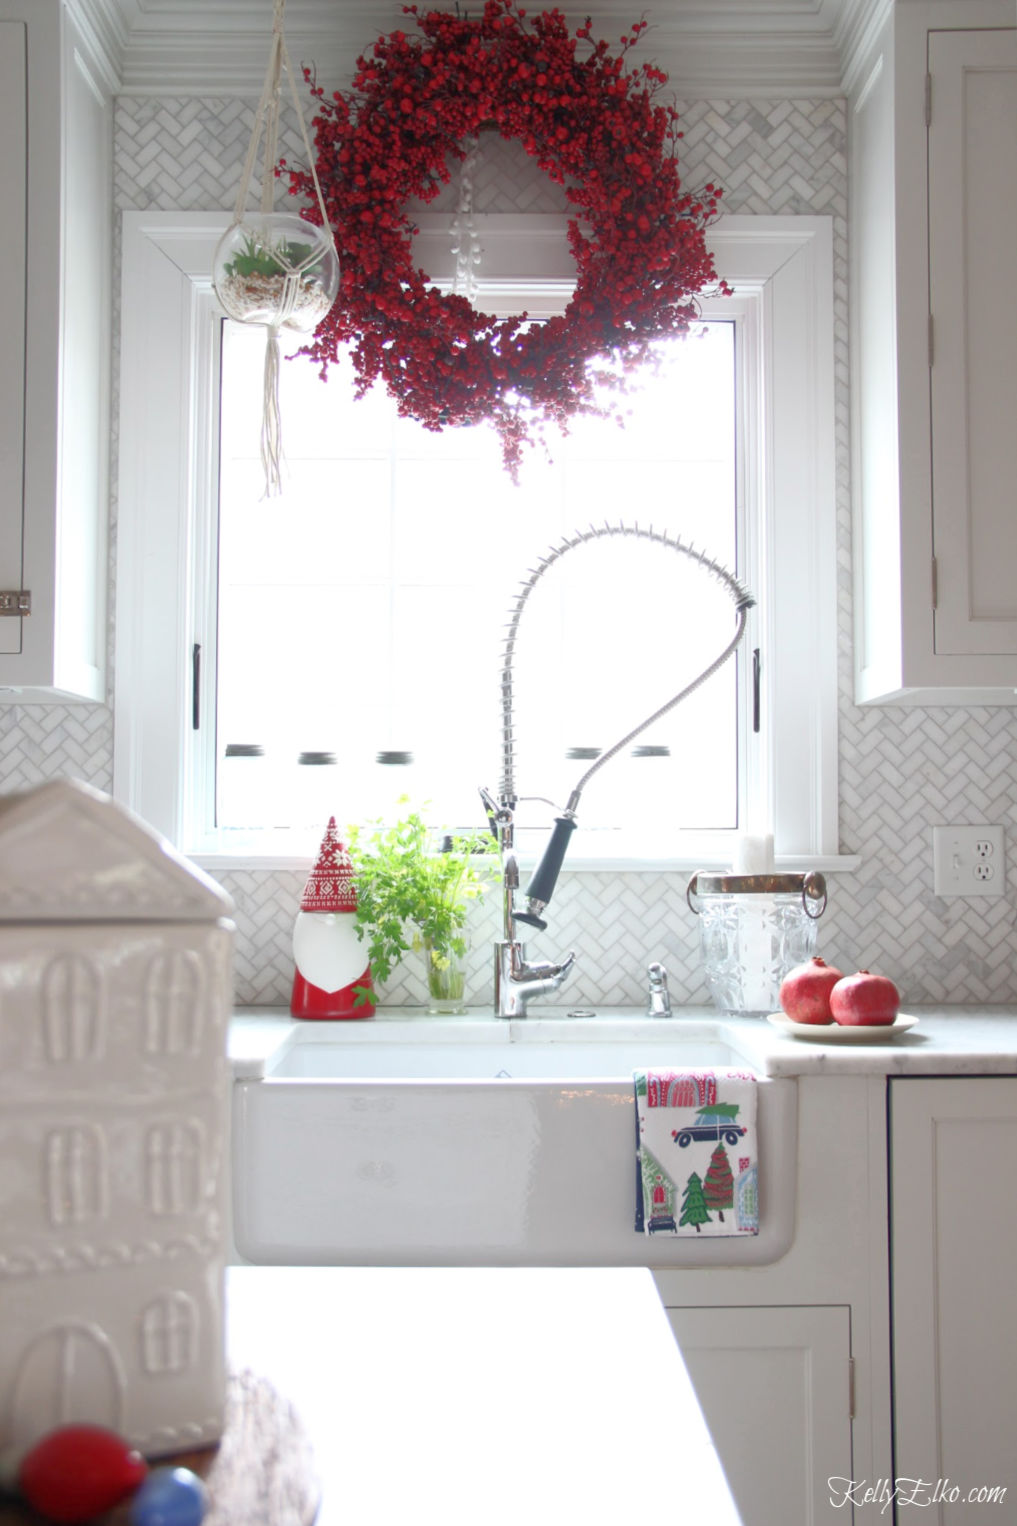 Christmas Home Tour - love the red berry wreath over the kitchen window and the gnome cookie jar in this beautiful white kitchen kellyelko.com #christmas #christmasdecor #christmasdecorating #christmashome #christmastour #diychristmas #christmasideas #christmasmantel #christmastree #christmasornaments #vintagechristmas #farmhousechristmas #colorfulchristmas #creativechristmas #kellyelko #whitekitchen #marbletile #kitchenwindow #berrywreath #christmaswreath #christmaskitchen